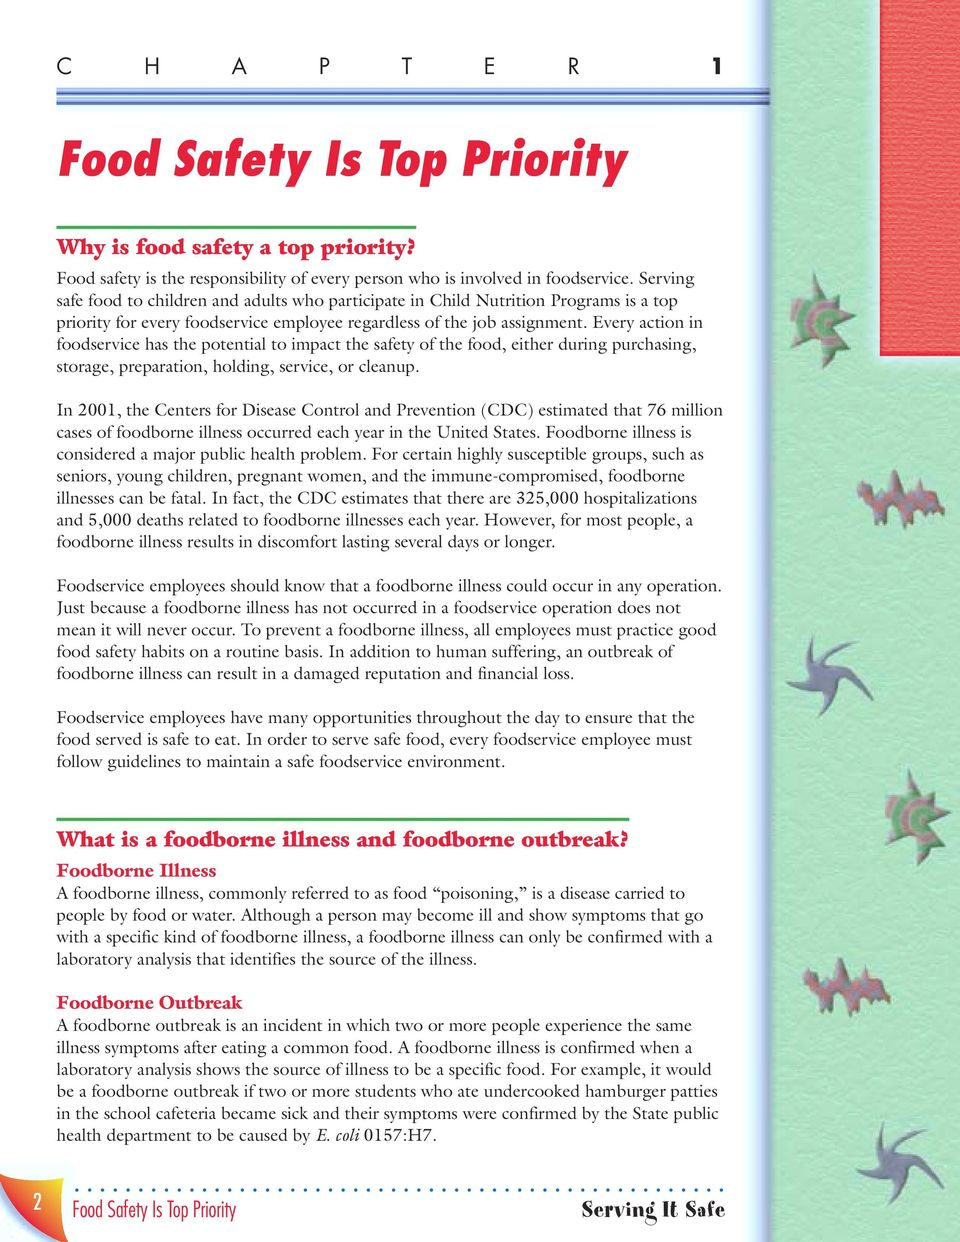 Every action in foodservice has the potential to impact the safety of the food, either during purchasing, storage, preparation, holding, service, or cleanup.